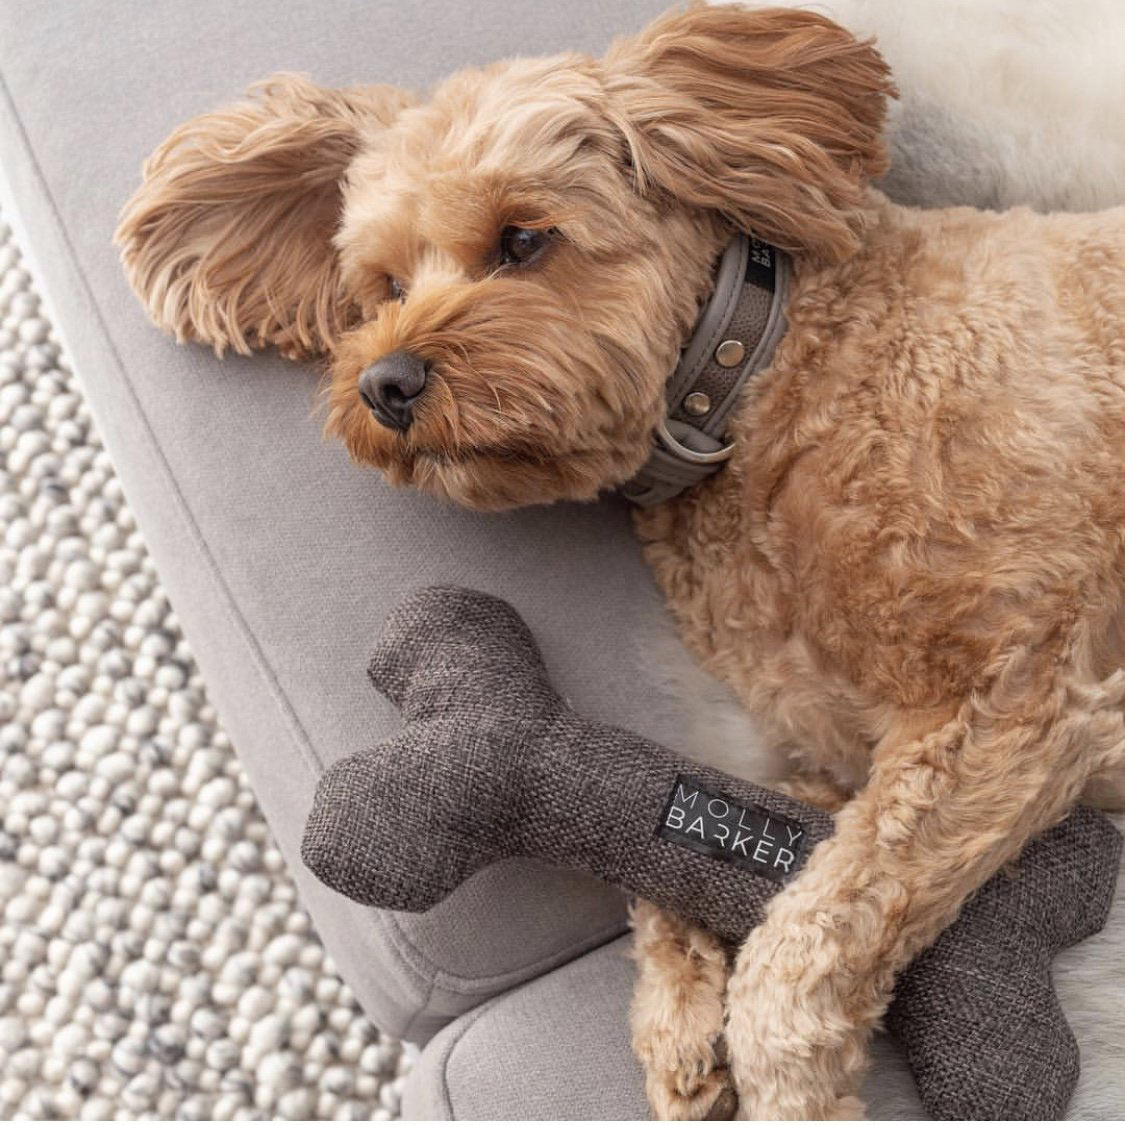 Sophisticated Dog Gear + Toys by Molly Barker